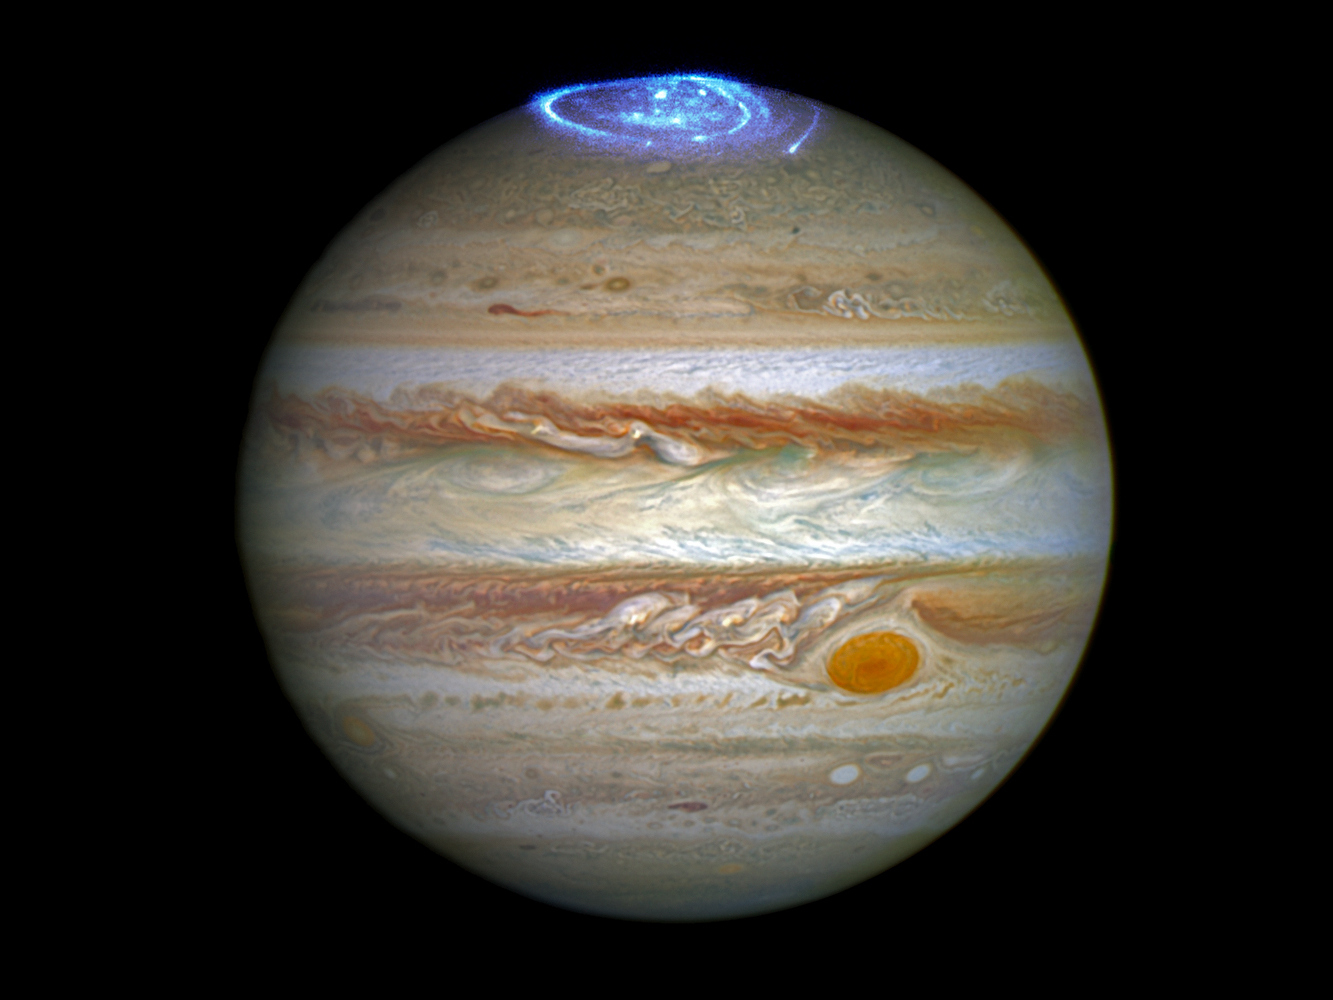 Using a series of far-ultraviolet images from Hubble's Space Telescope Imaging Spectrograph, it is possible for scientists to follow the movement of Jupiter's vivid aurorae, which cover areas bigger than the Earth. Not only are the aurorae huge in size, they are also hundreds of times more energetic than aurorae on Earth. And, unlike those on Earth, they never cease. Image credit: NASA, ESA, and J. Nichols (University of Leicester). Acknowledgment: A. Simon (NASA/GSFC) and the OPAL team.